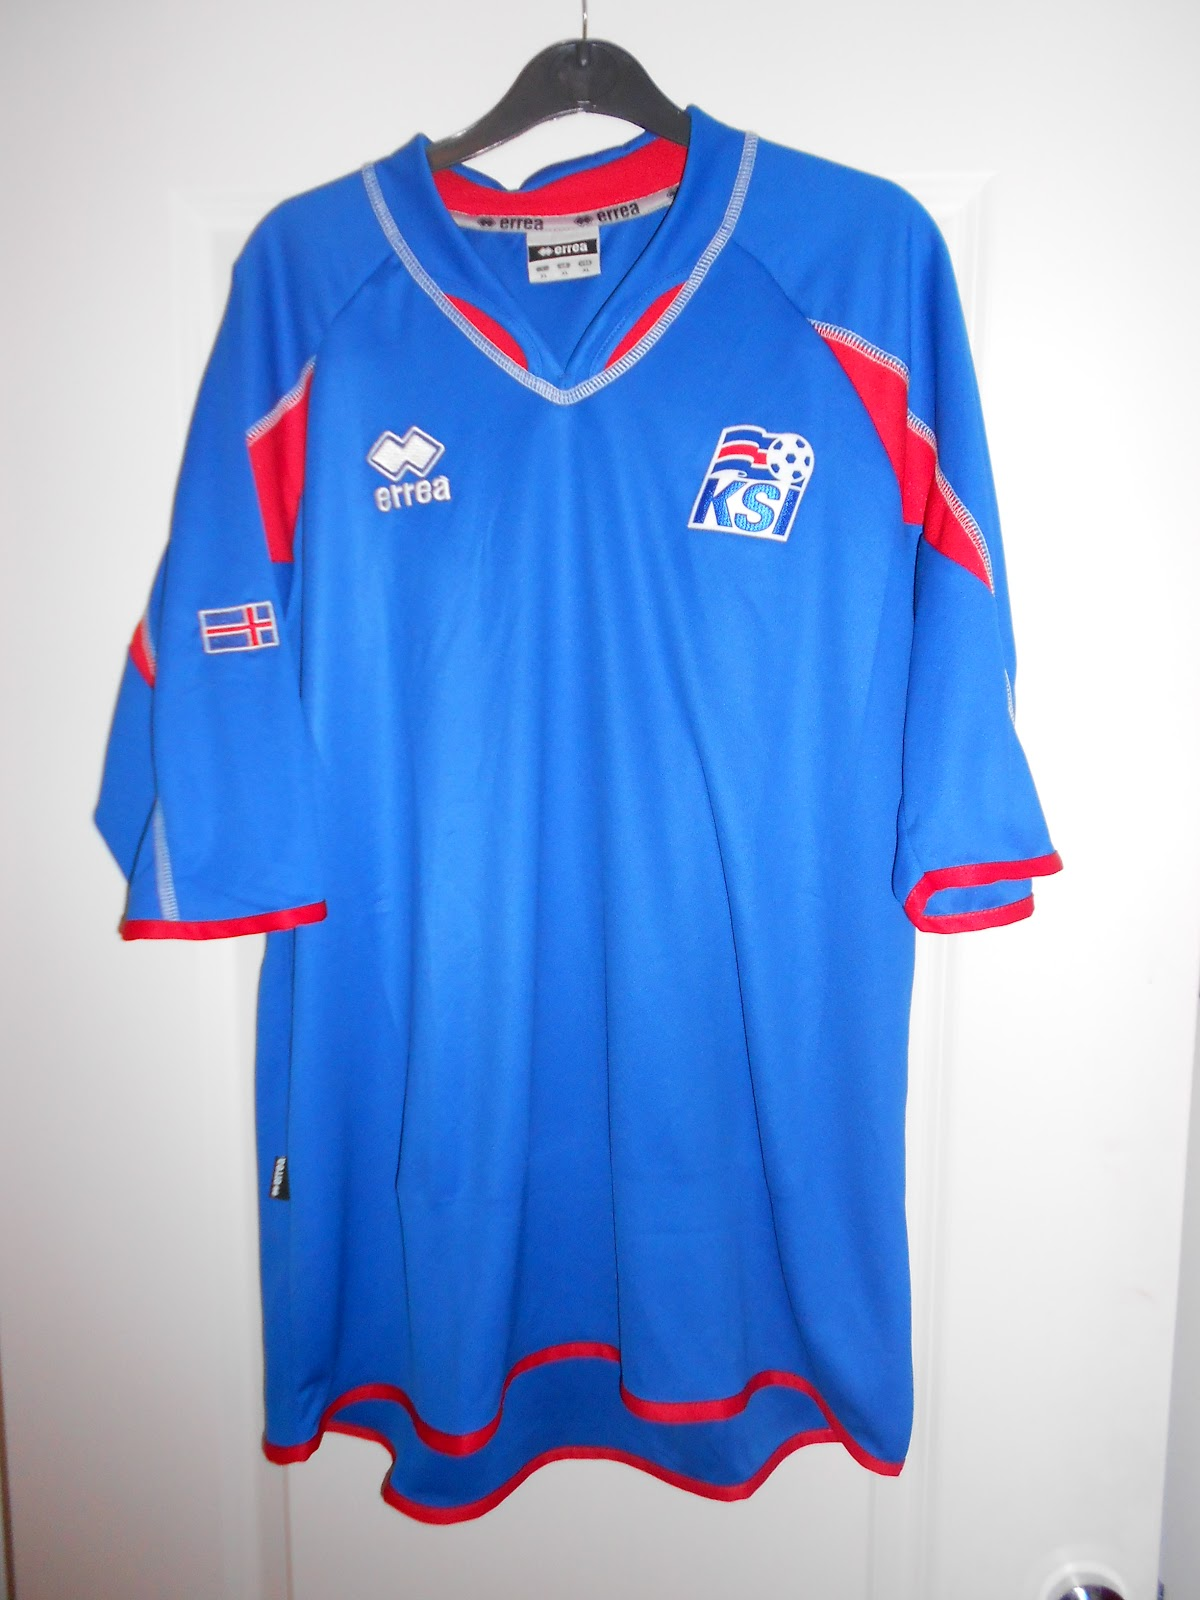 51c6a63a629 My collection of football shirts: Iceland Home 2006